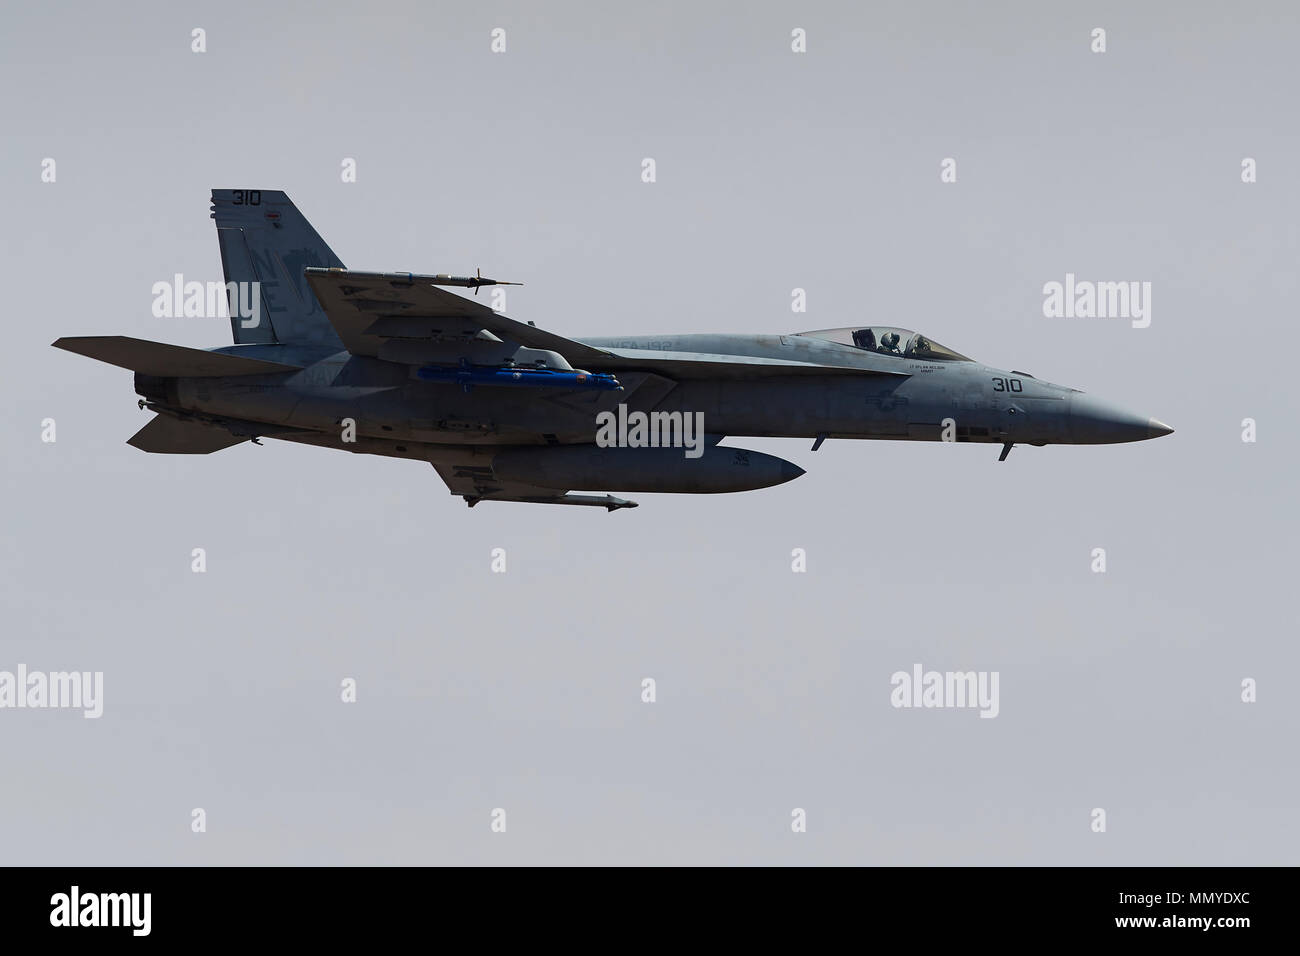 US Navy F/A-18E Super Hornet Jet Fighter Flying Over Rainbow Canyon California, USA. Stock Photo